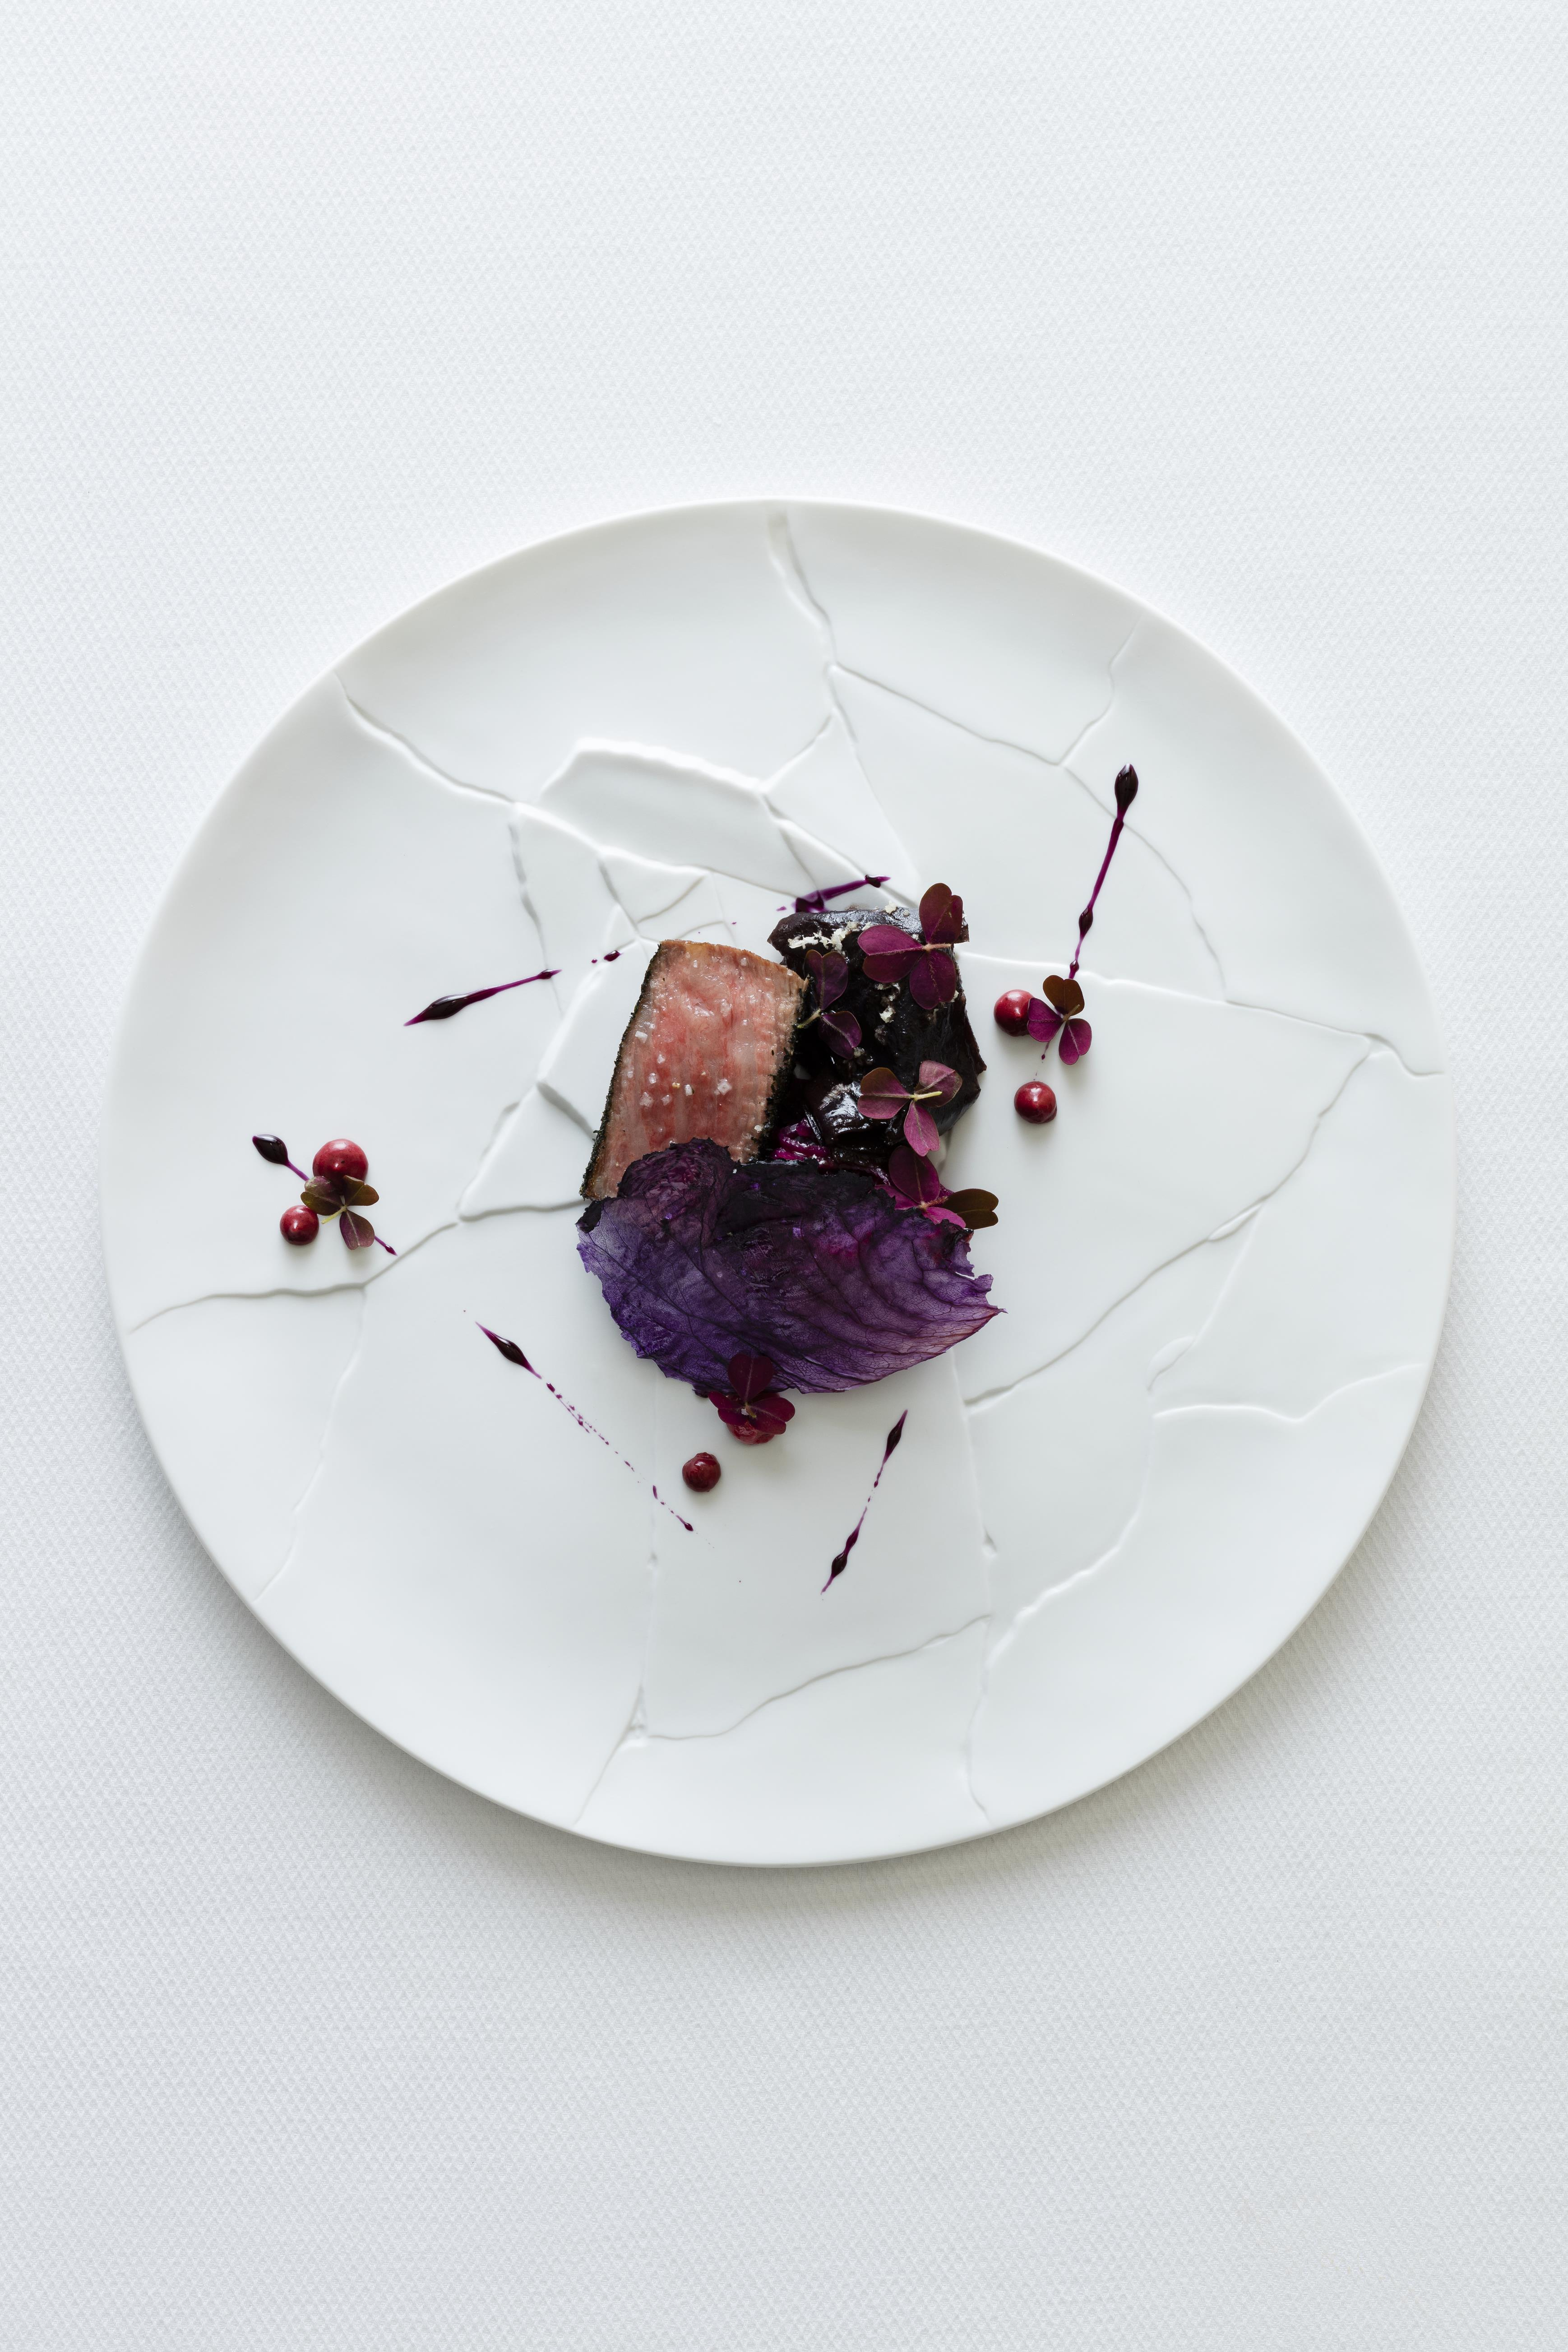 miyazaki wagyu beef, strip loin, barbecued with dulse & red cabbage slaw, oxalis, horseradish & pepper berry emulsion.jpg